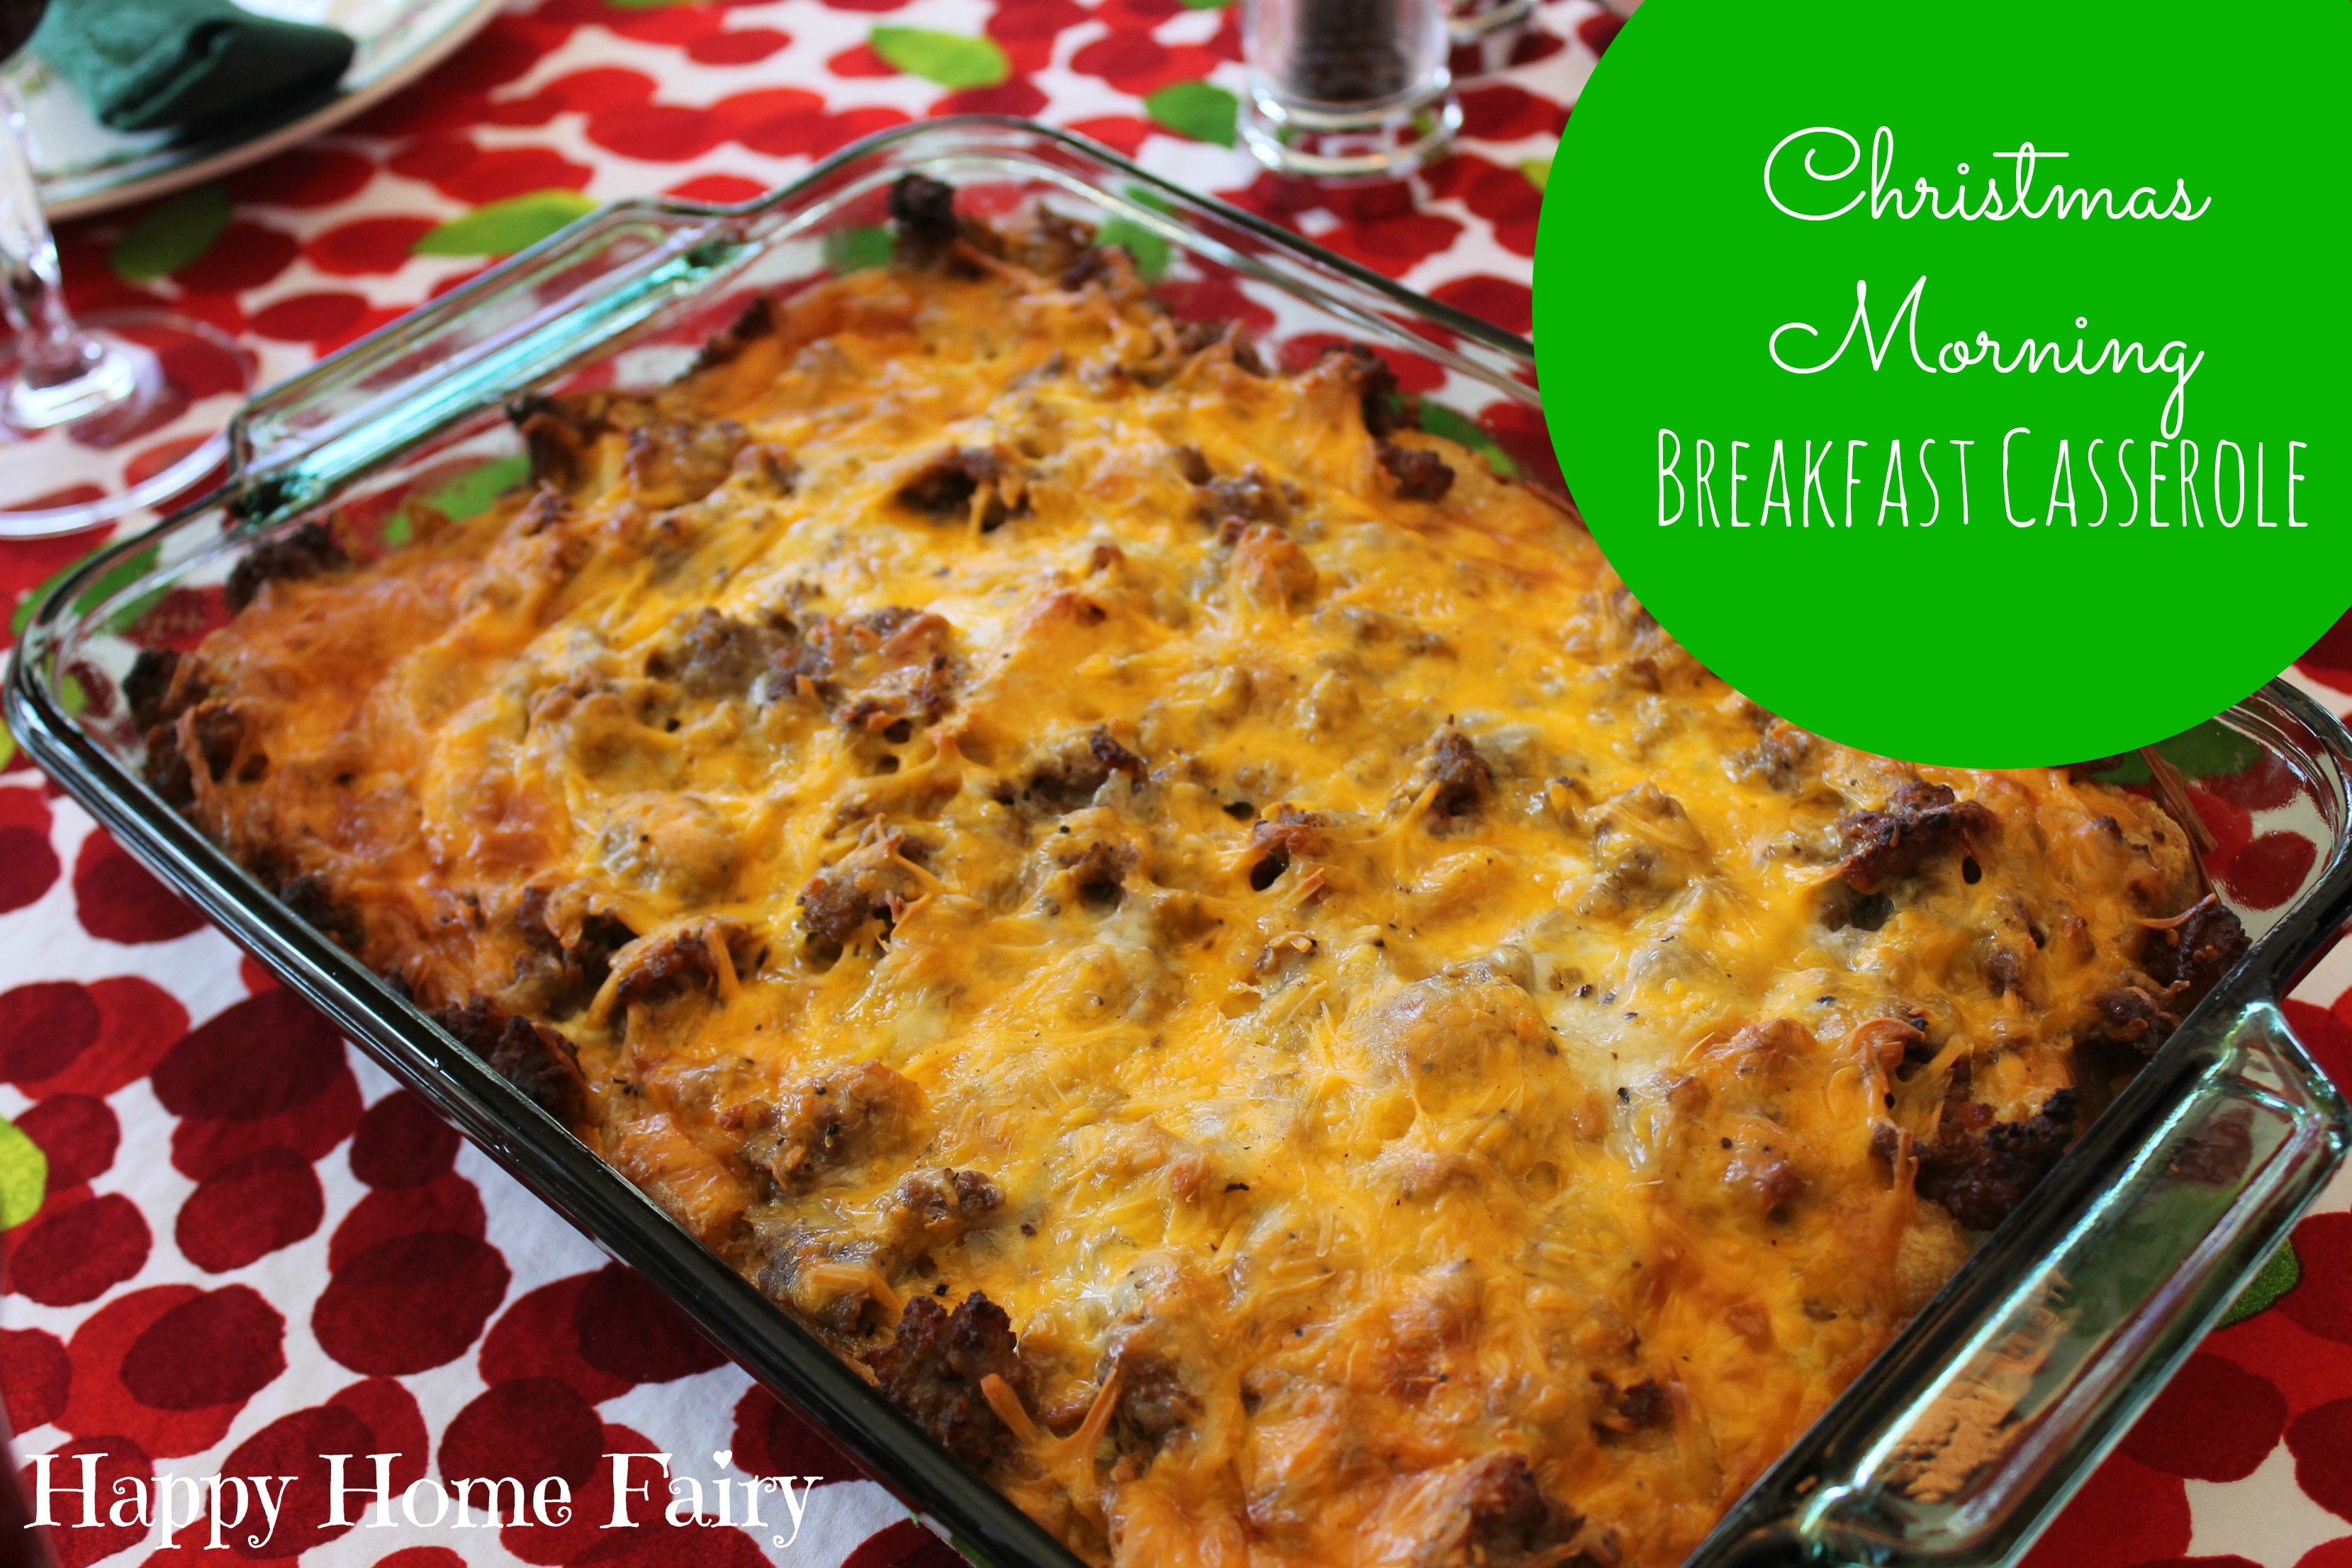 breakfast casserole for christmas morning so easy and soooo delicious the perfect tradition